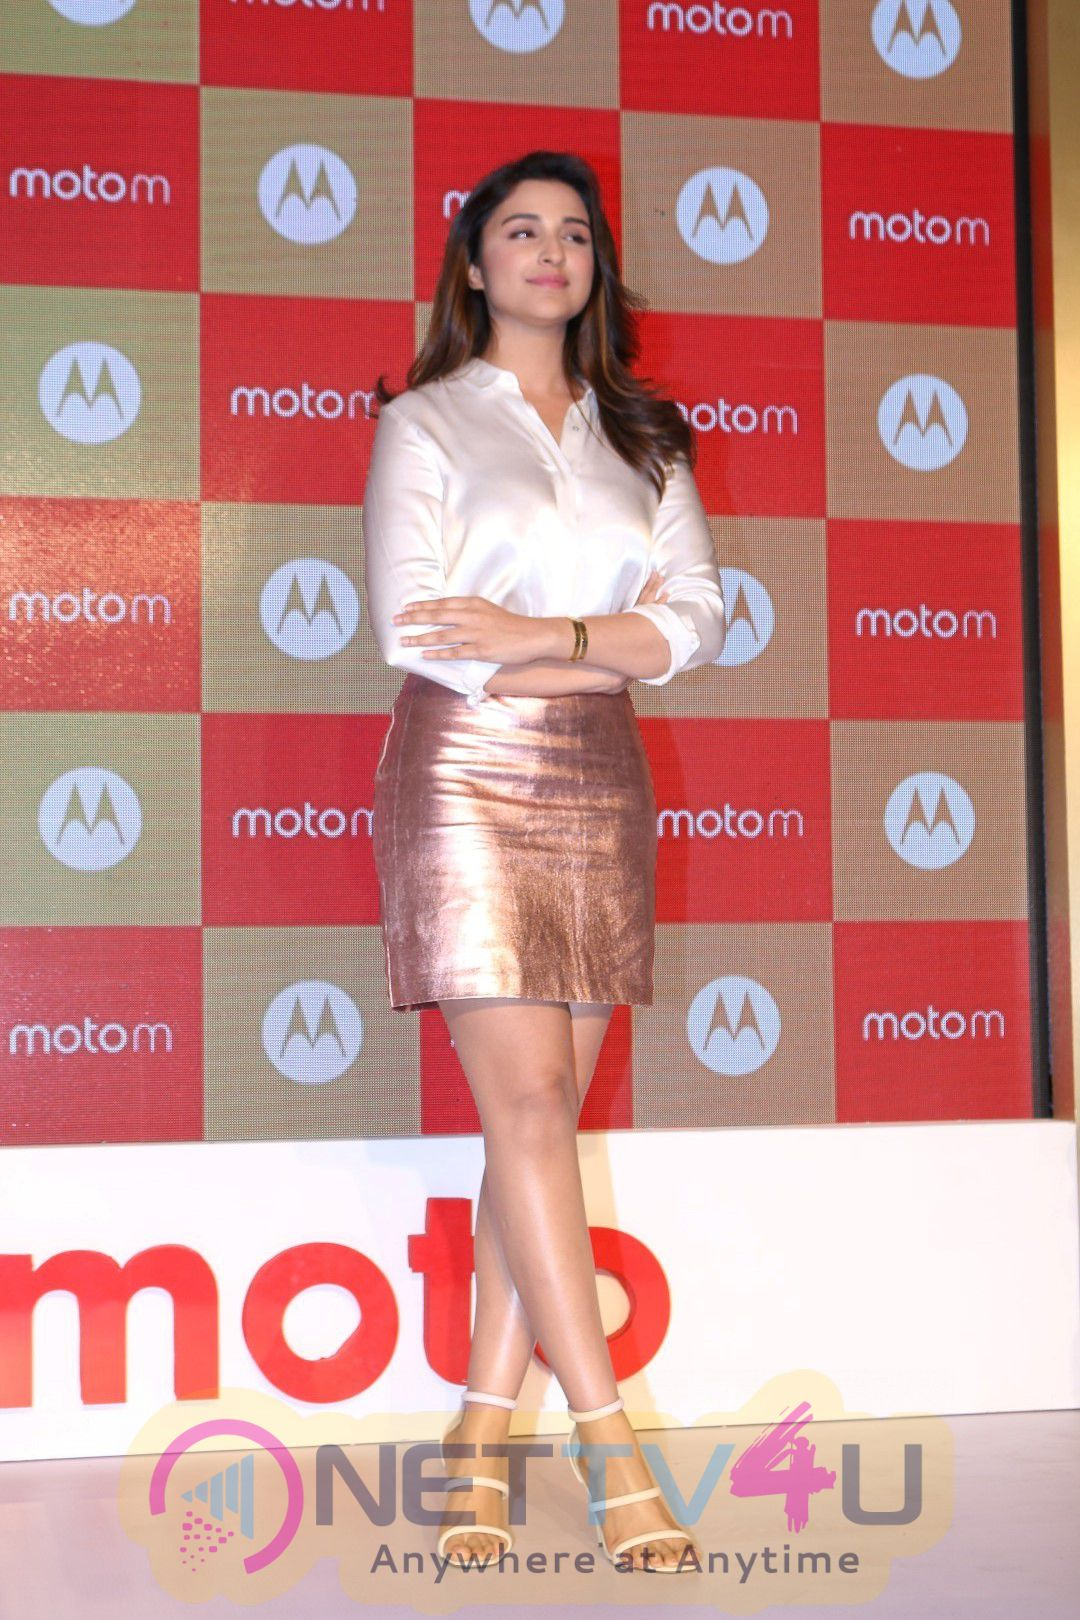 Product Launch In The Presence Of Indian Actress Parineeti Chopra Photos